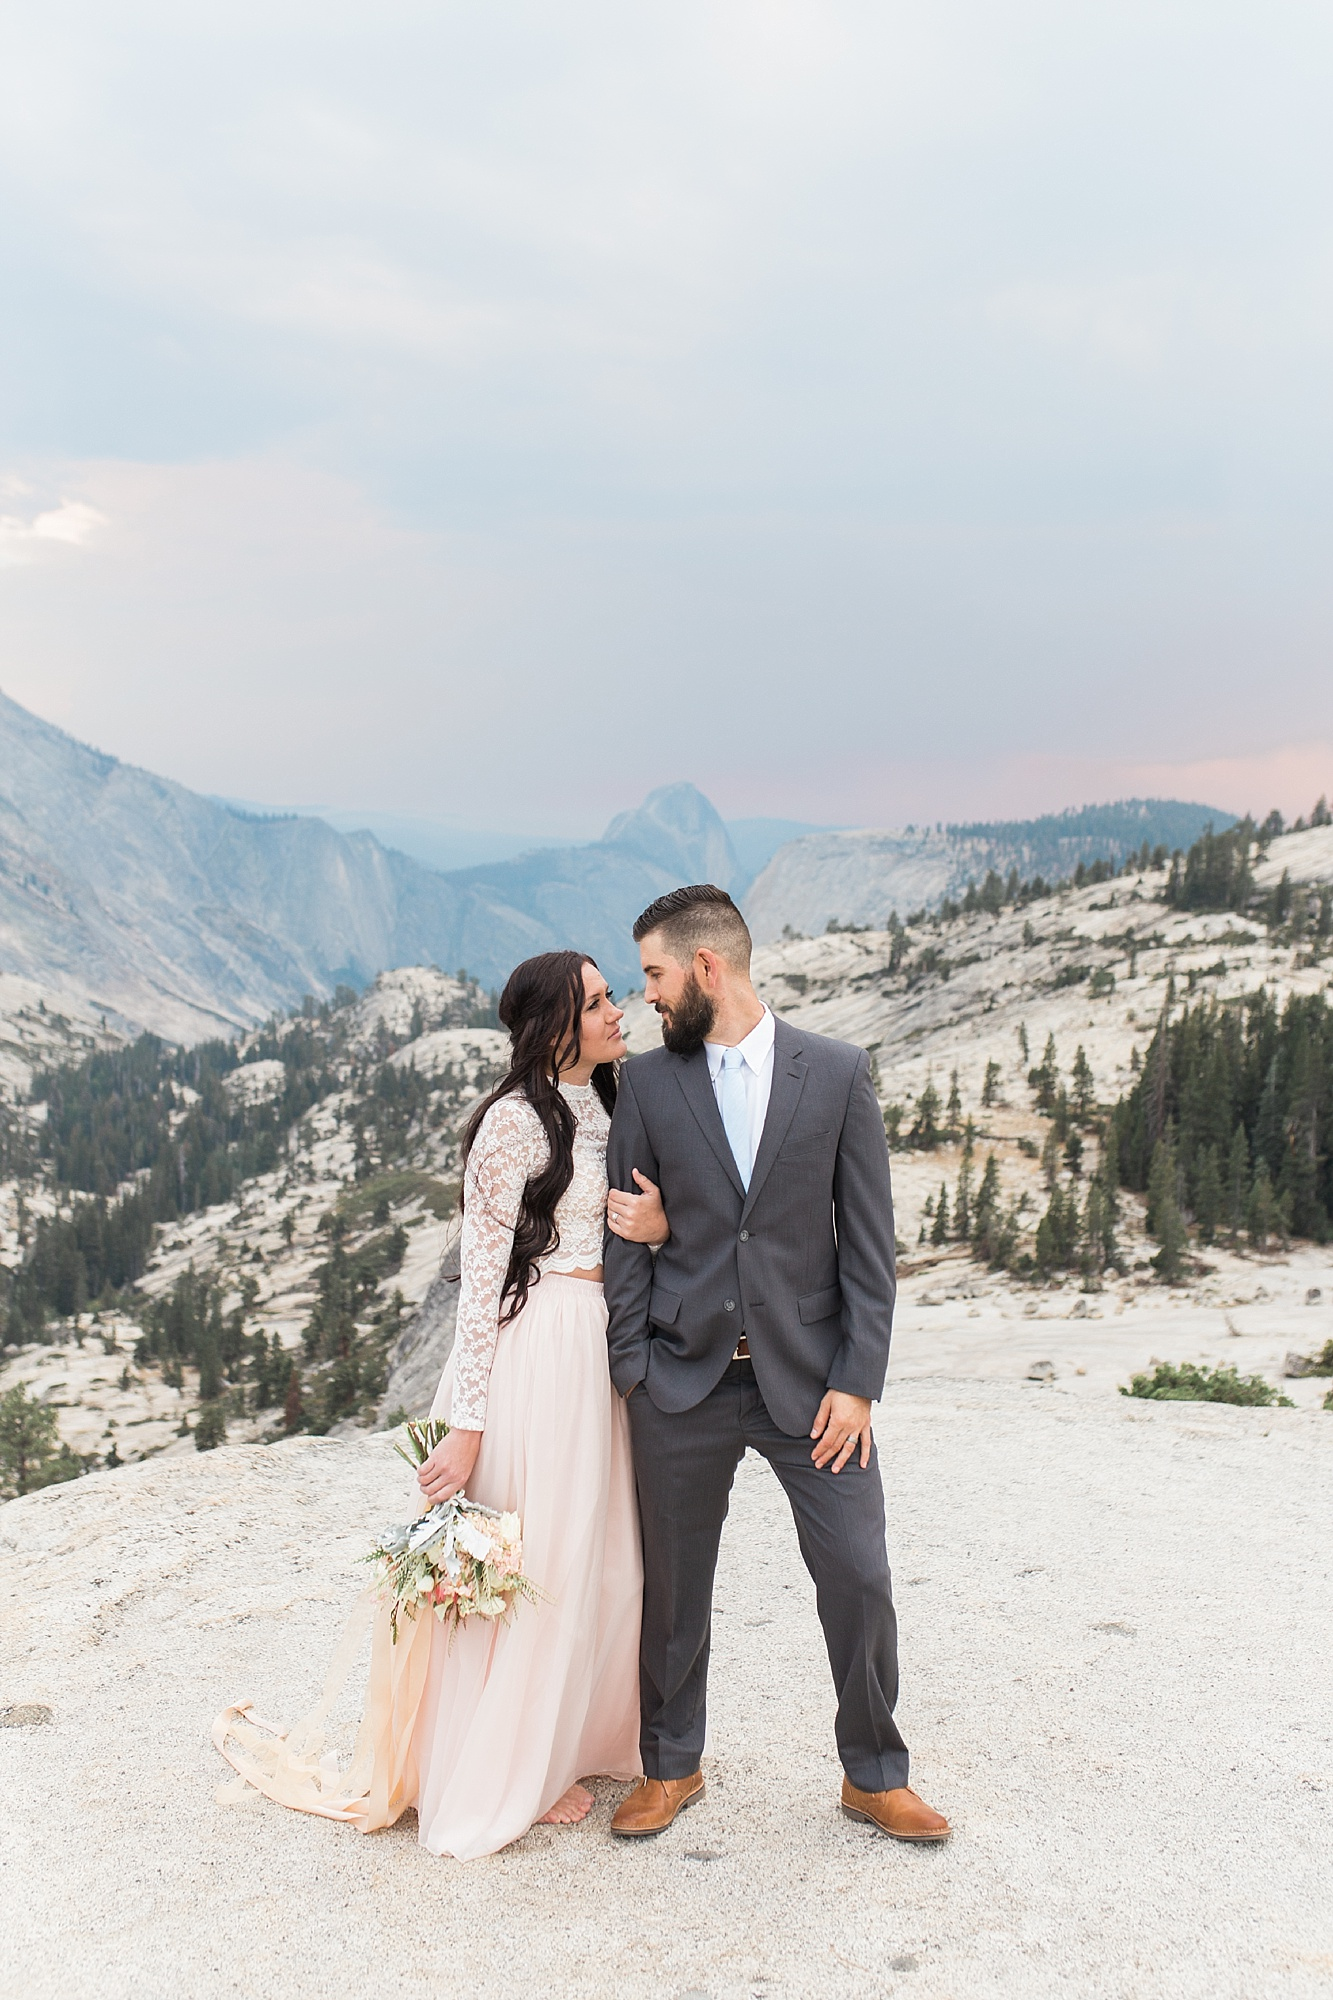 Ashley Baumgartner Photography & Calligraphy Yosemite Vow Renewal featured on 100 Layer Cake_0017.jpg